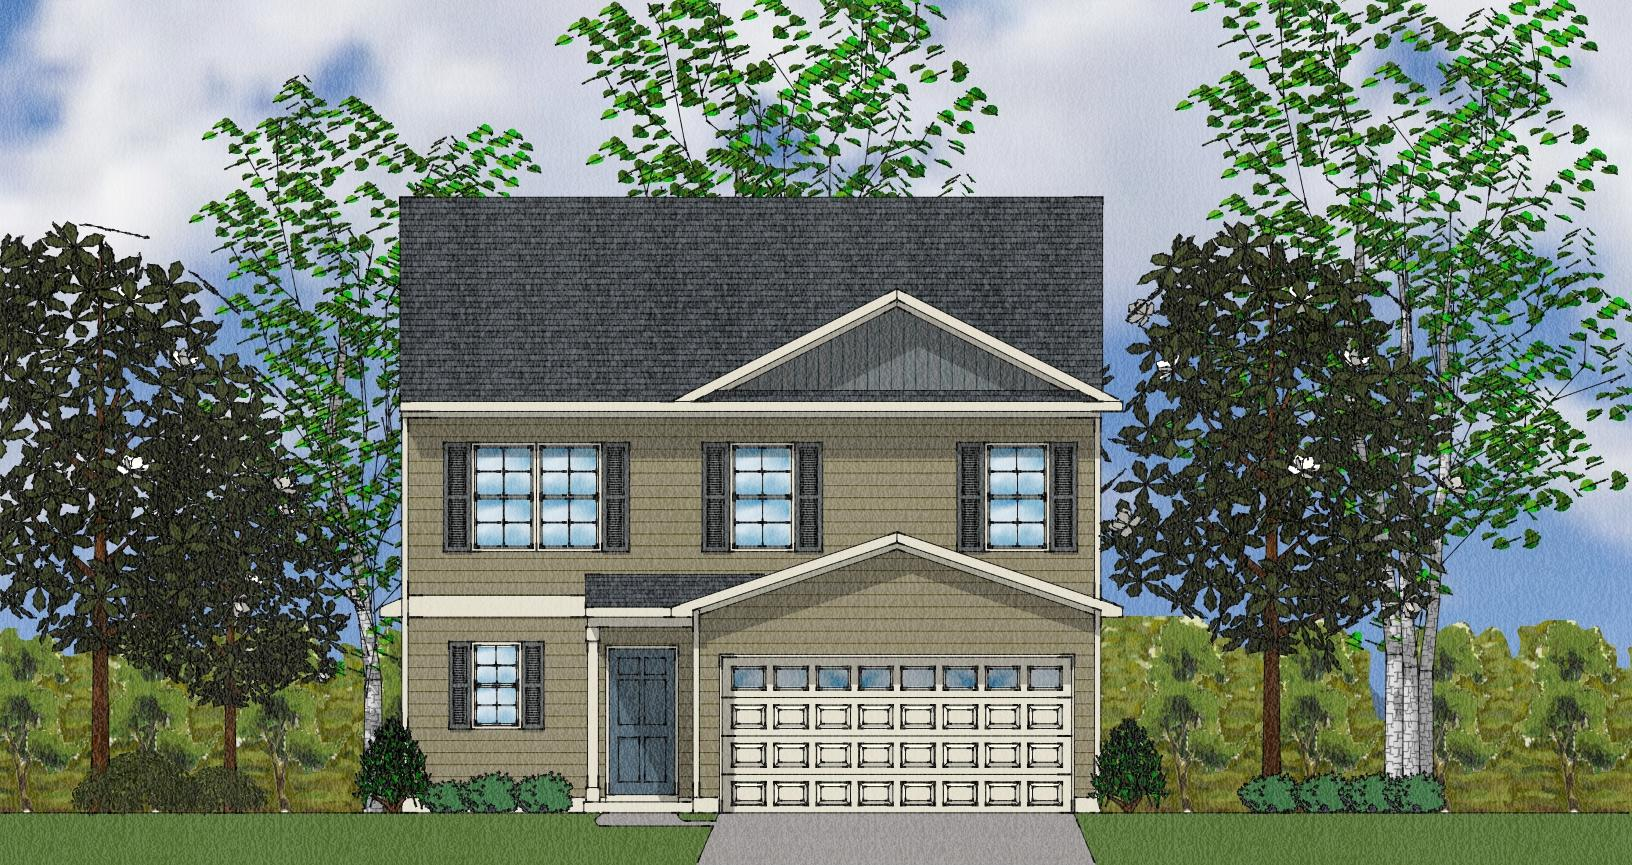 Monroe Plan, Pooler, GA 31322 - 4 Bed, 2 5 Bath Single-Family Home - 7  Photos | Trulia